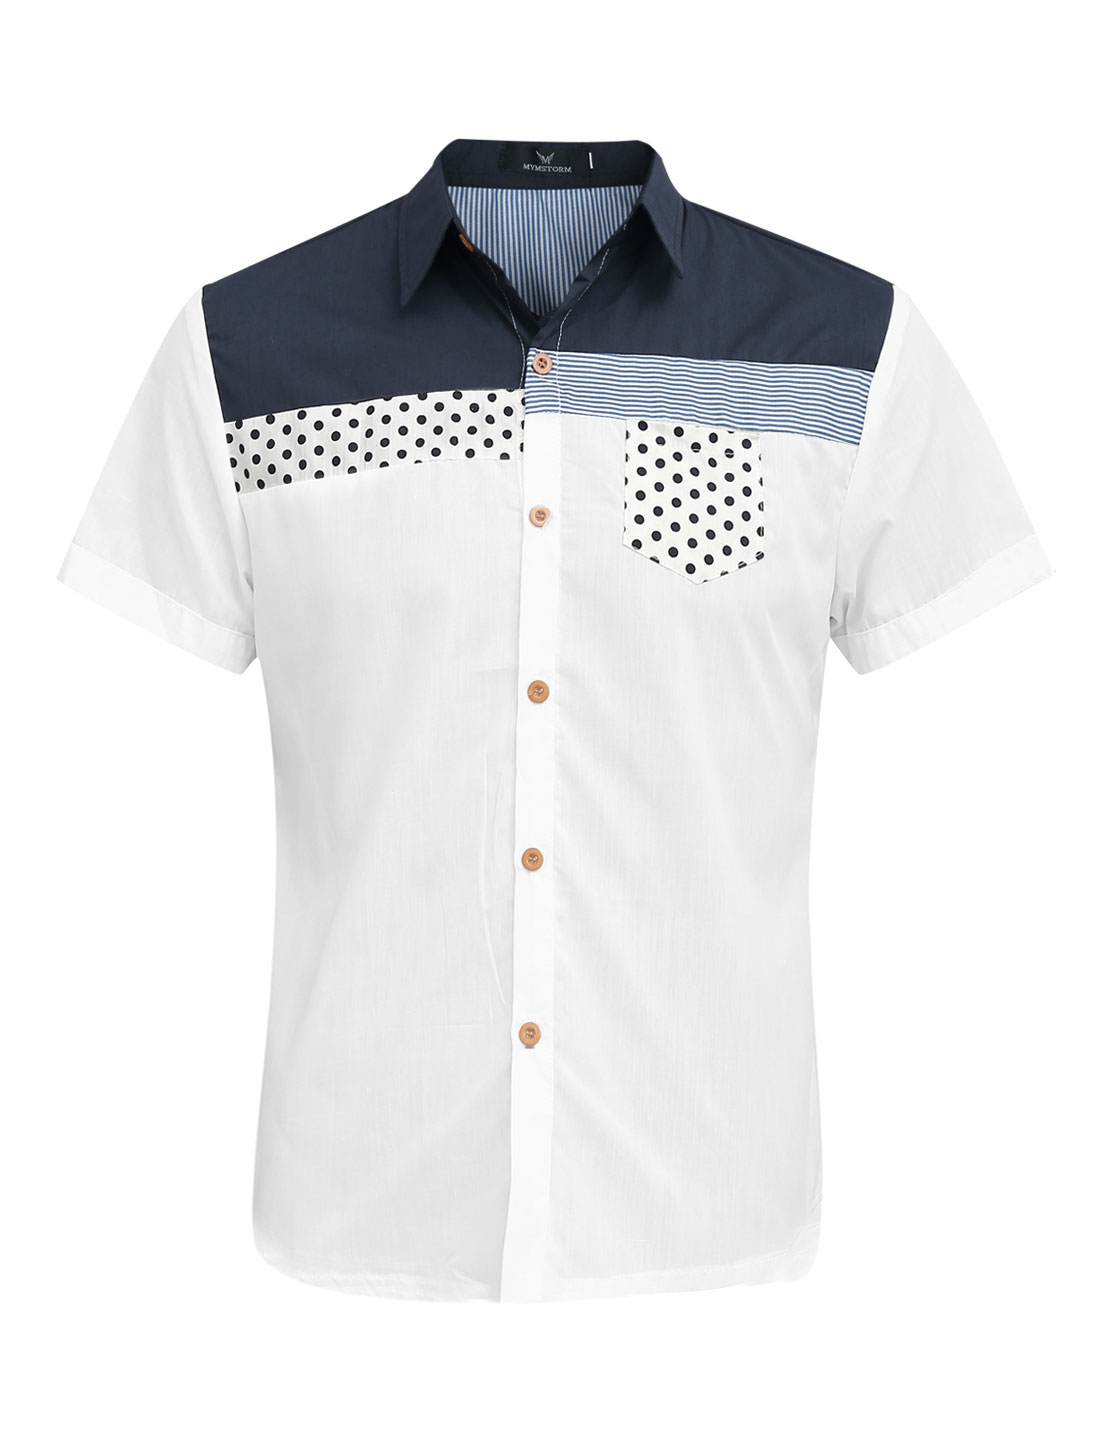 Men Dots Pattern One Chest Pocket Cozy Fit Top Shirt White M